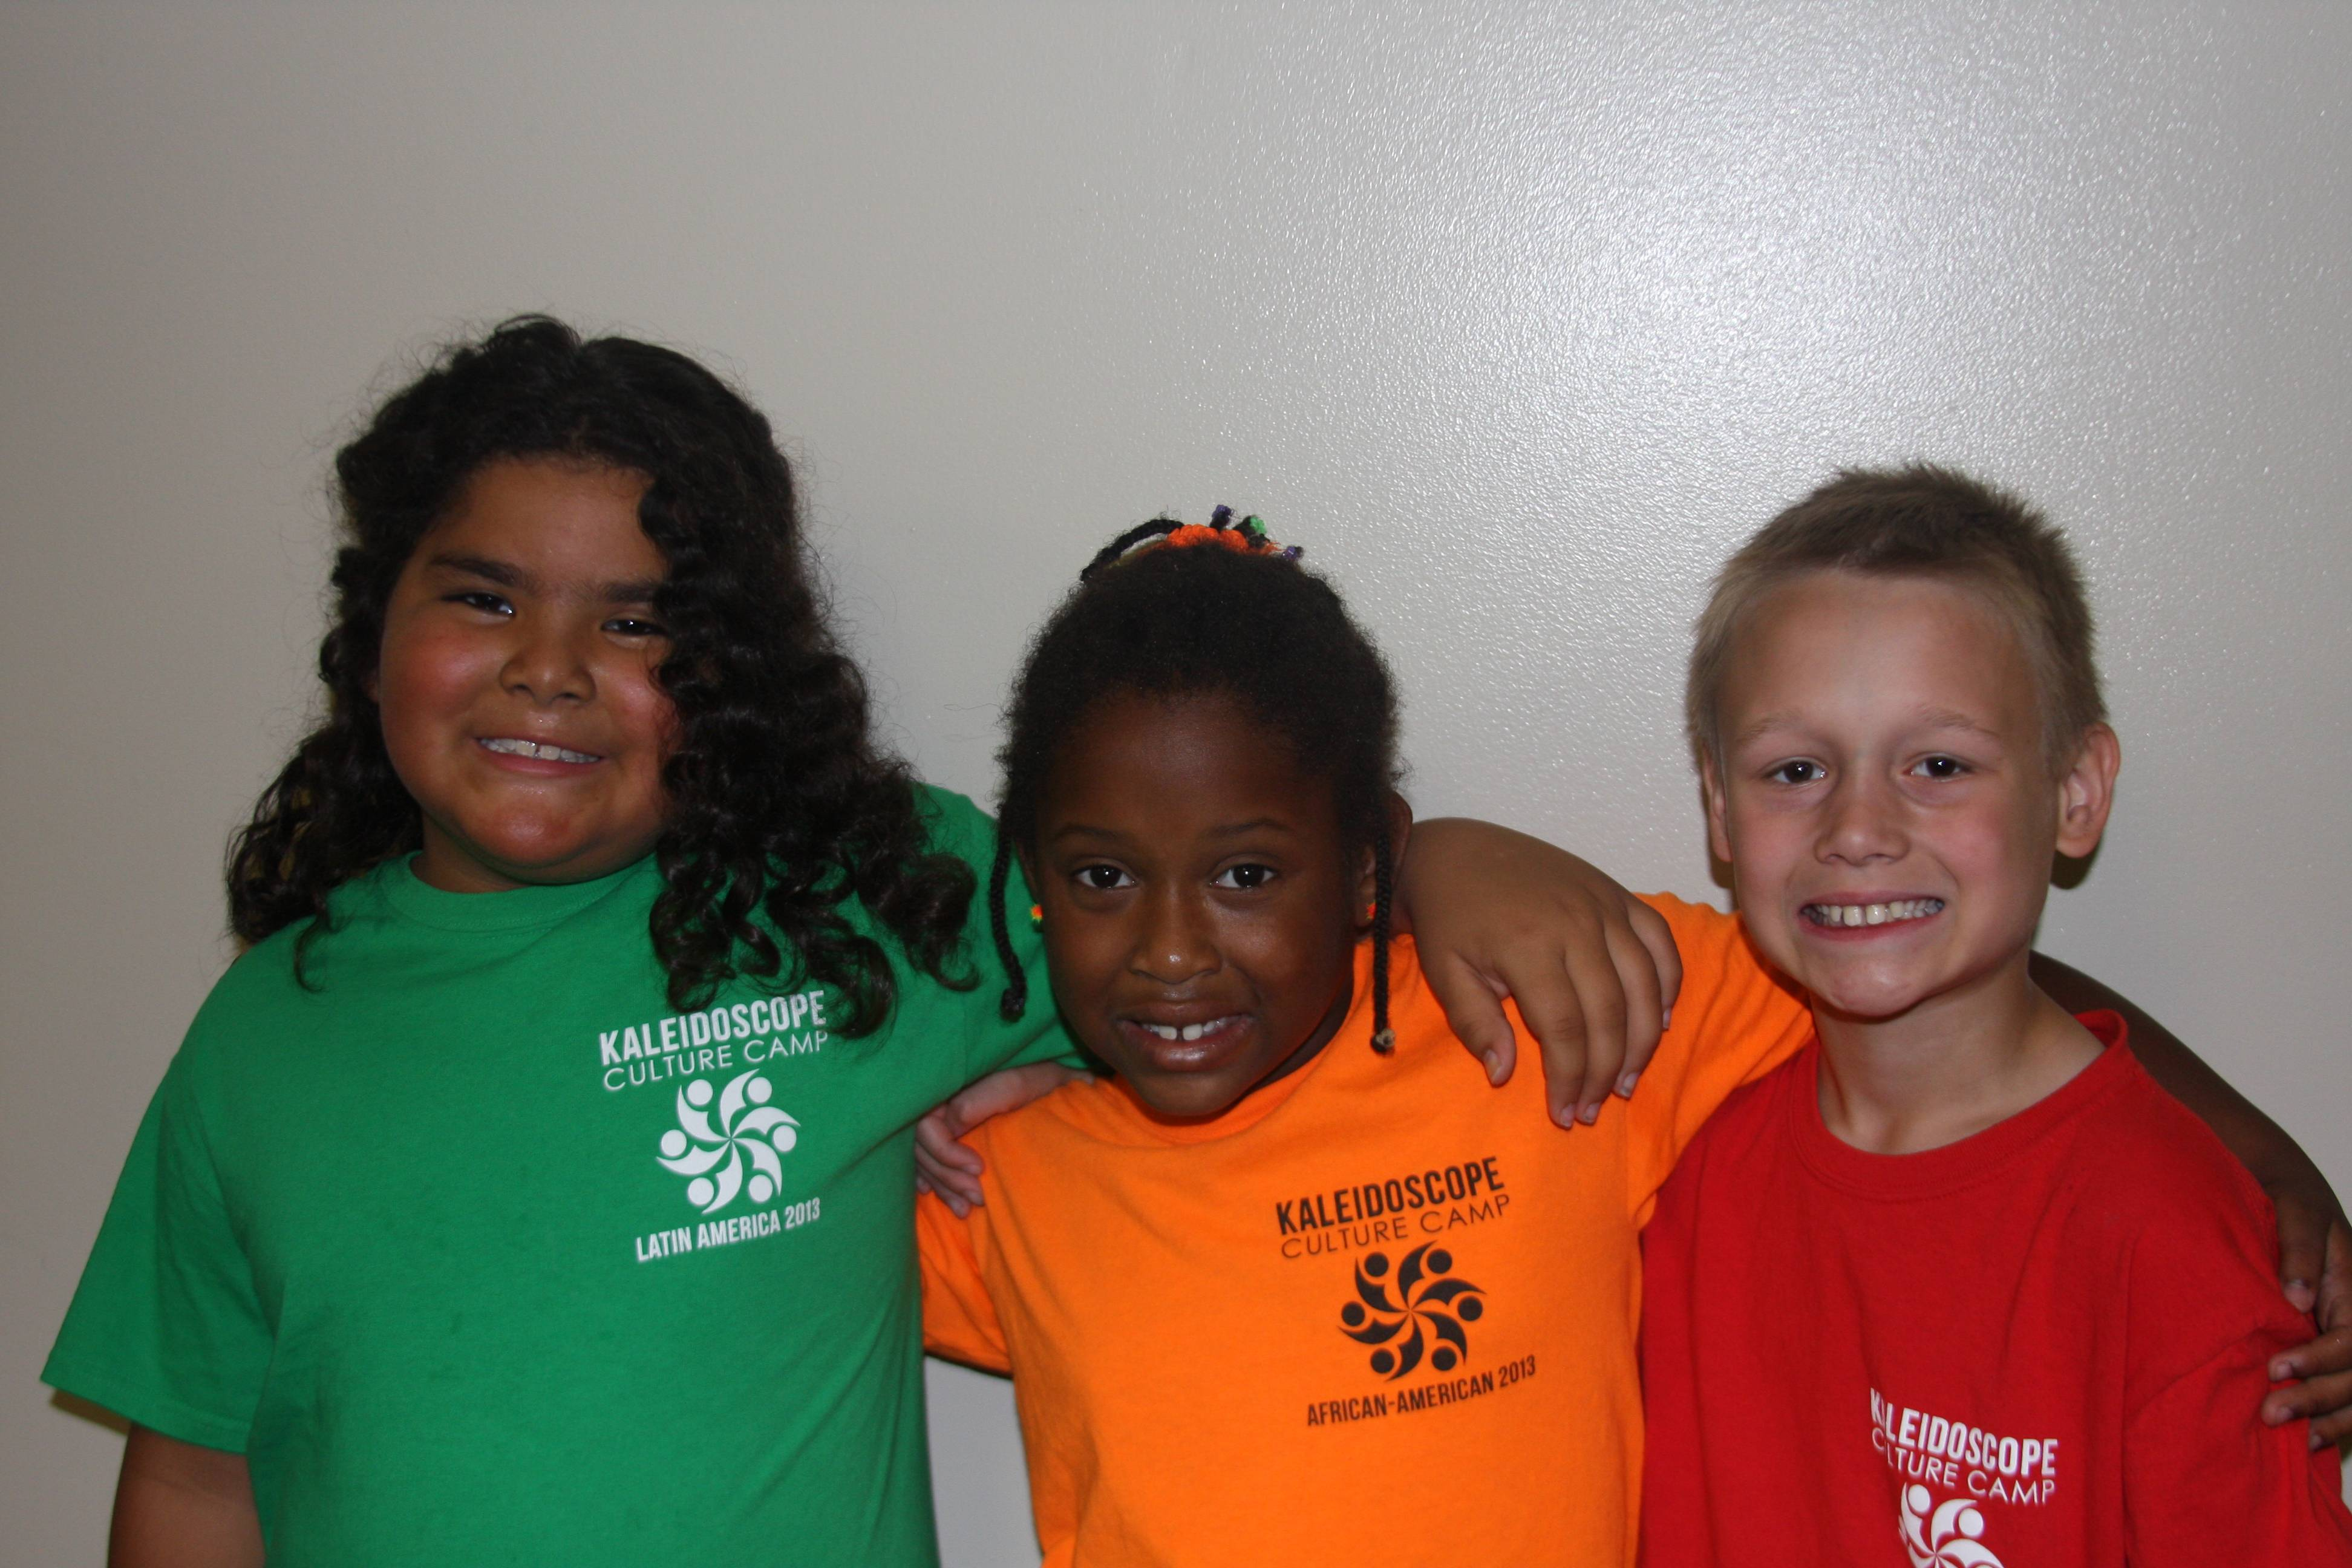 From left, Joanna Hatch, Saniya Herold and Nick Jonynas enjoy  Kaleidoscope Culture Camp